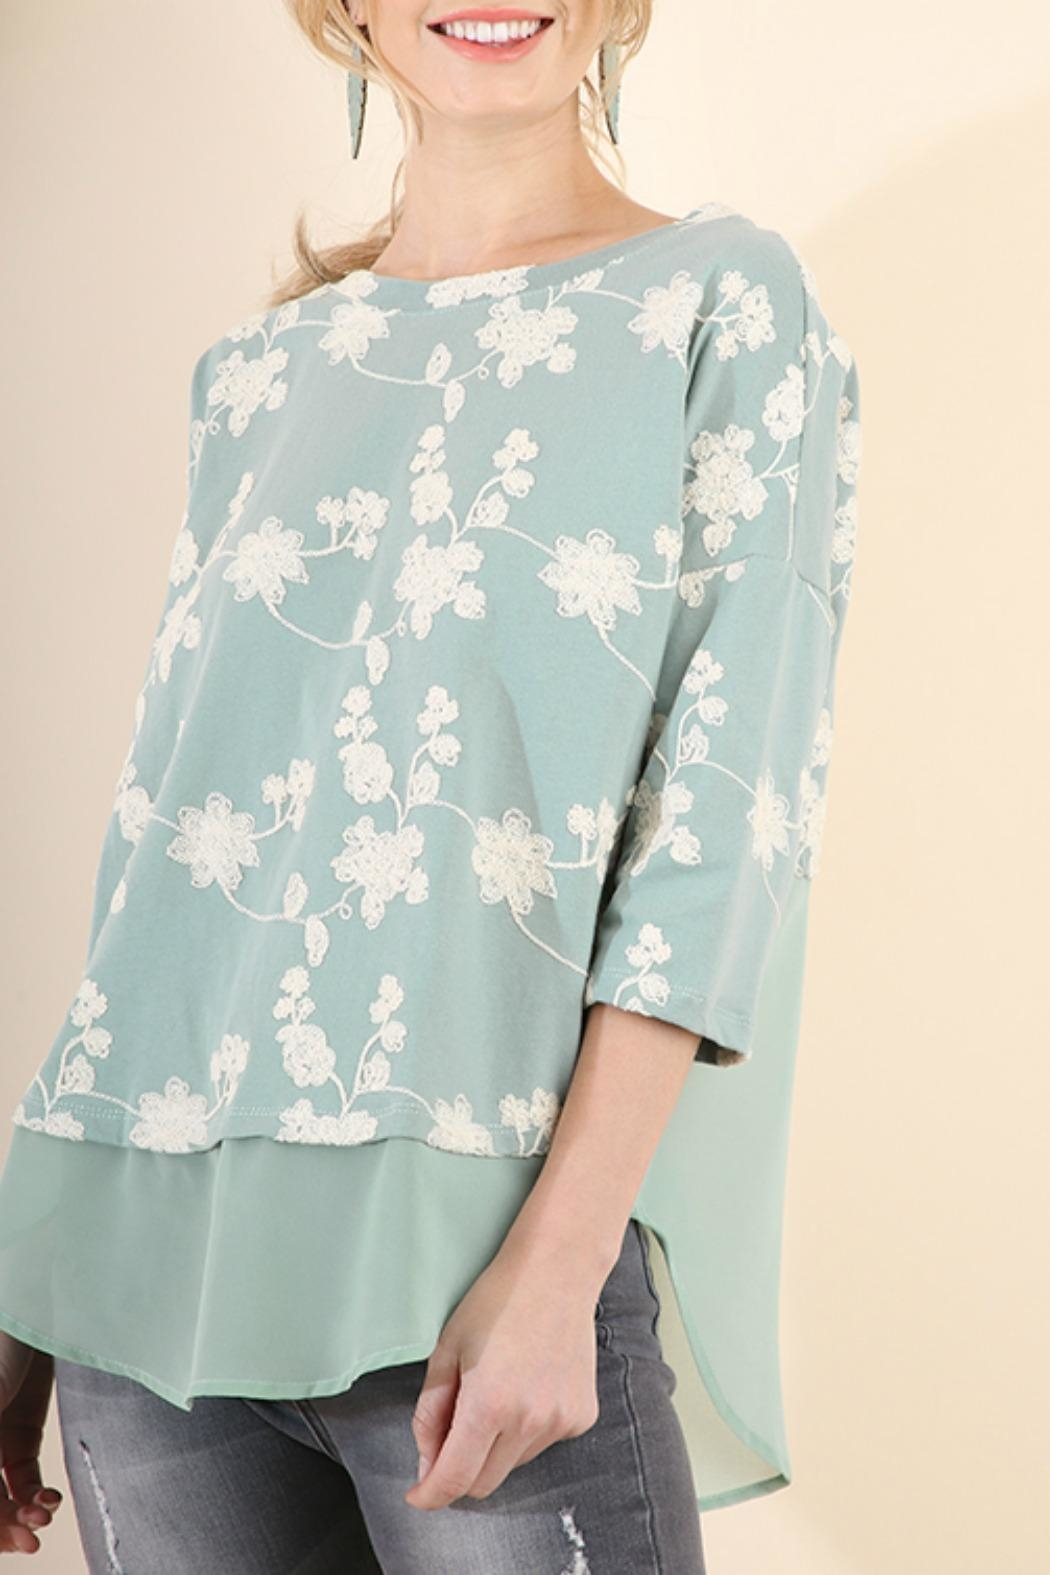 Umgee USA Floral Embroidered Tunic from Texas by BareTrees Boutique ...